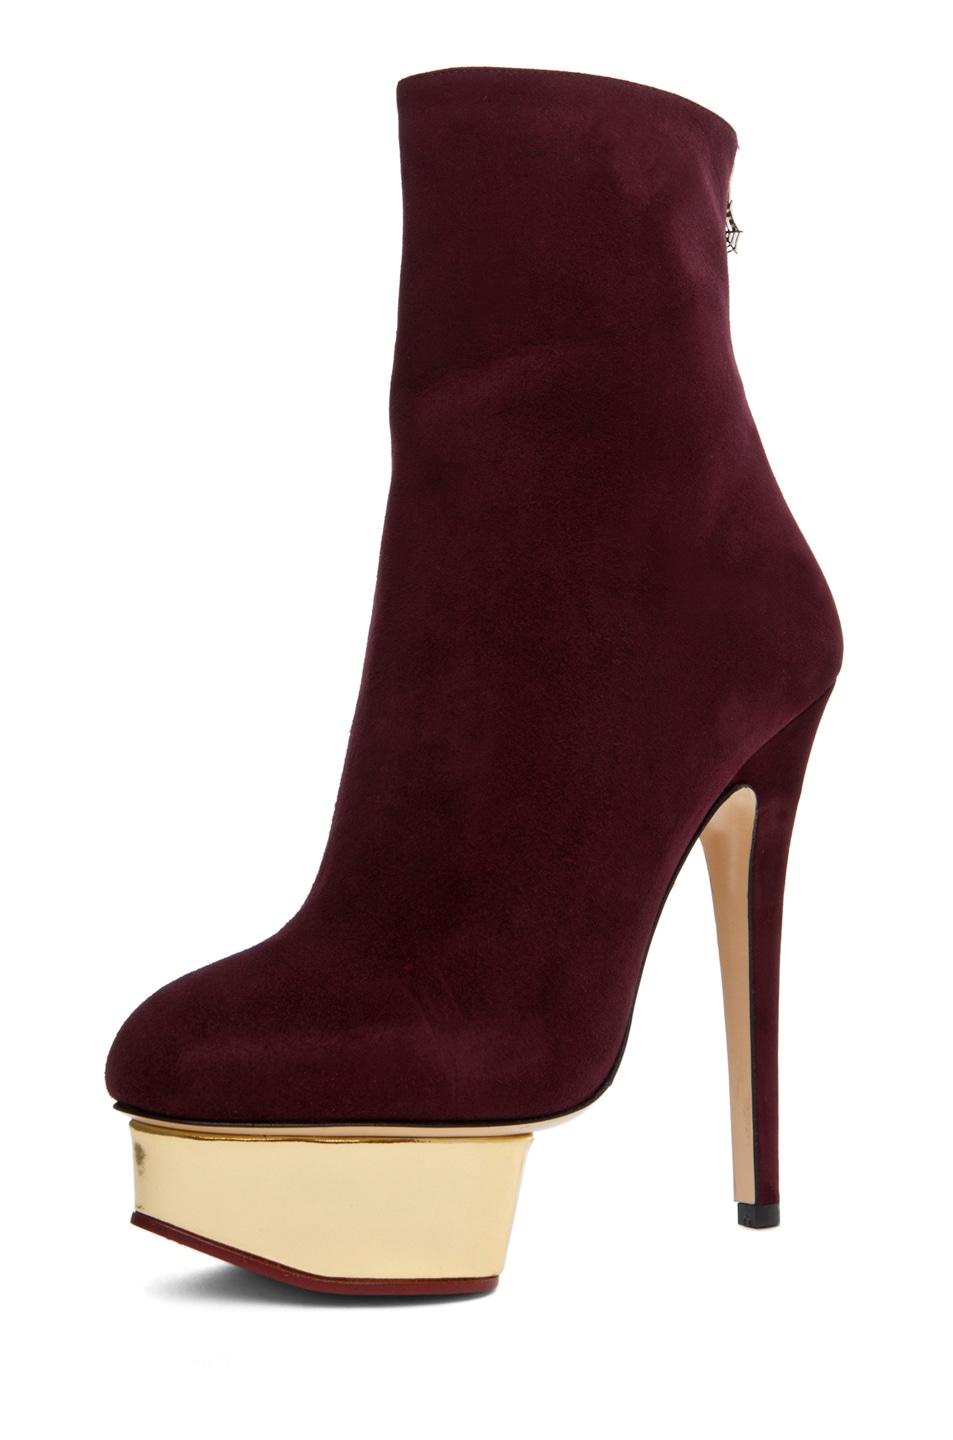 Image 2 of Charlotte Olympia Lucinda Ankle Boot in Aubergine